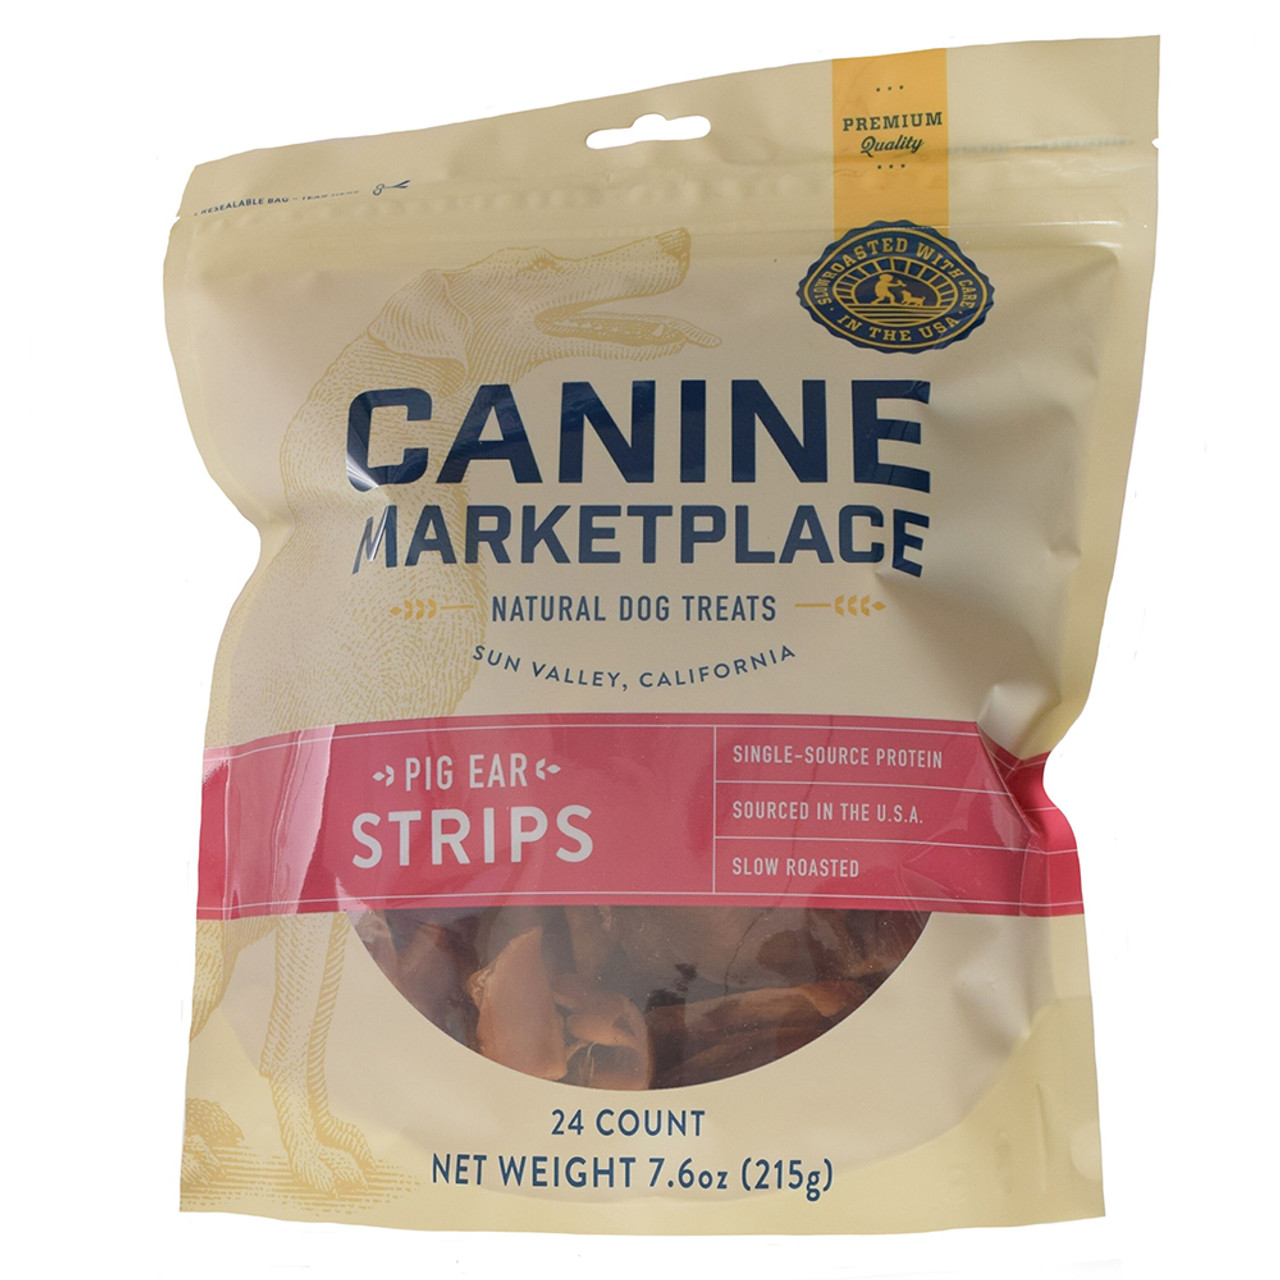 Canine Marketplace Pig Ear Strips Natural Dog Treats